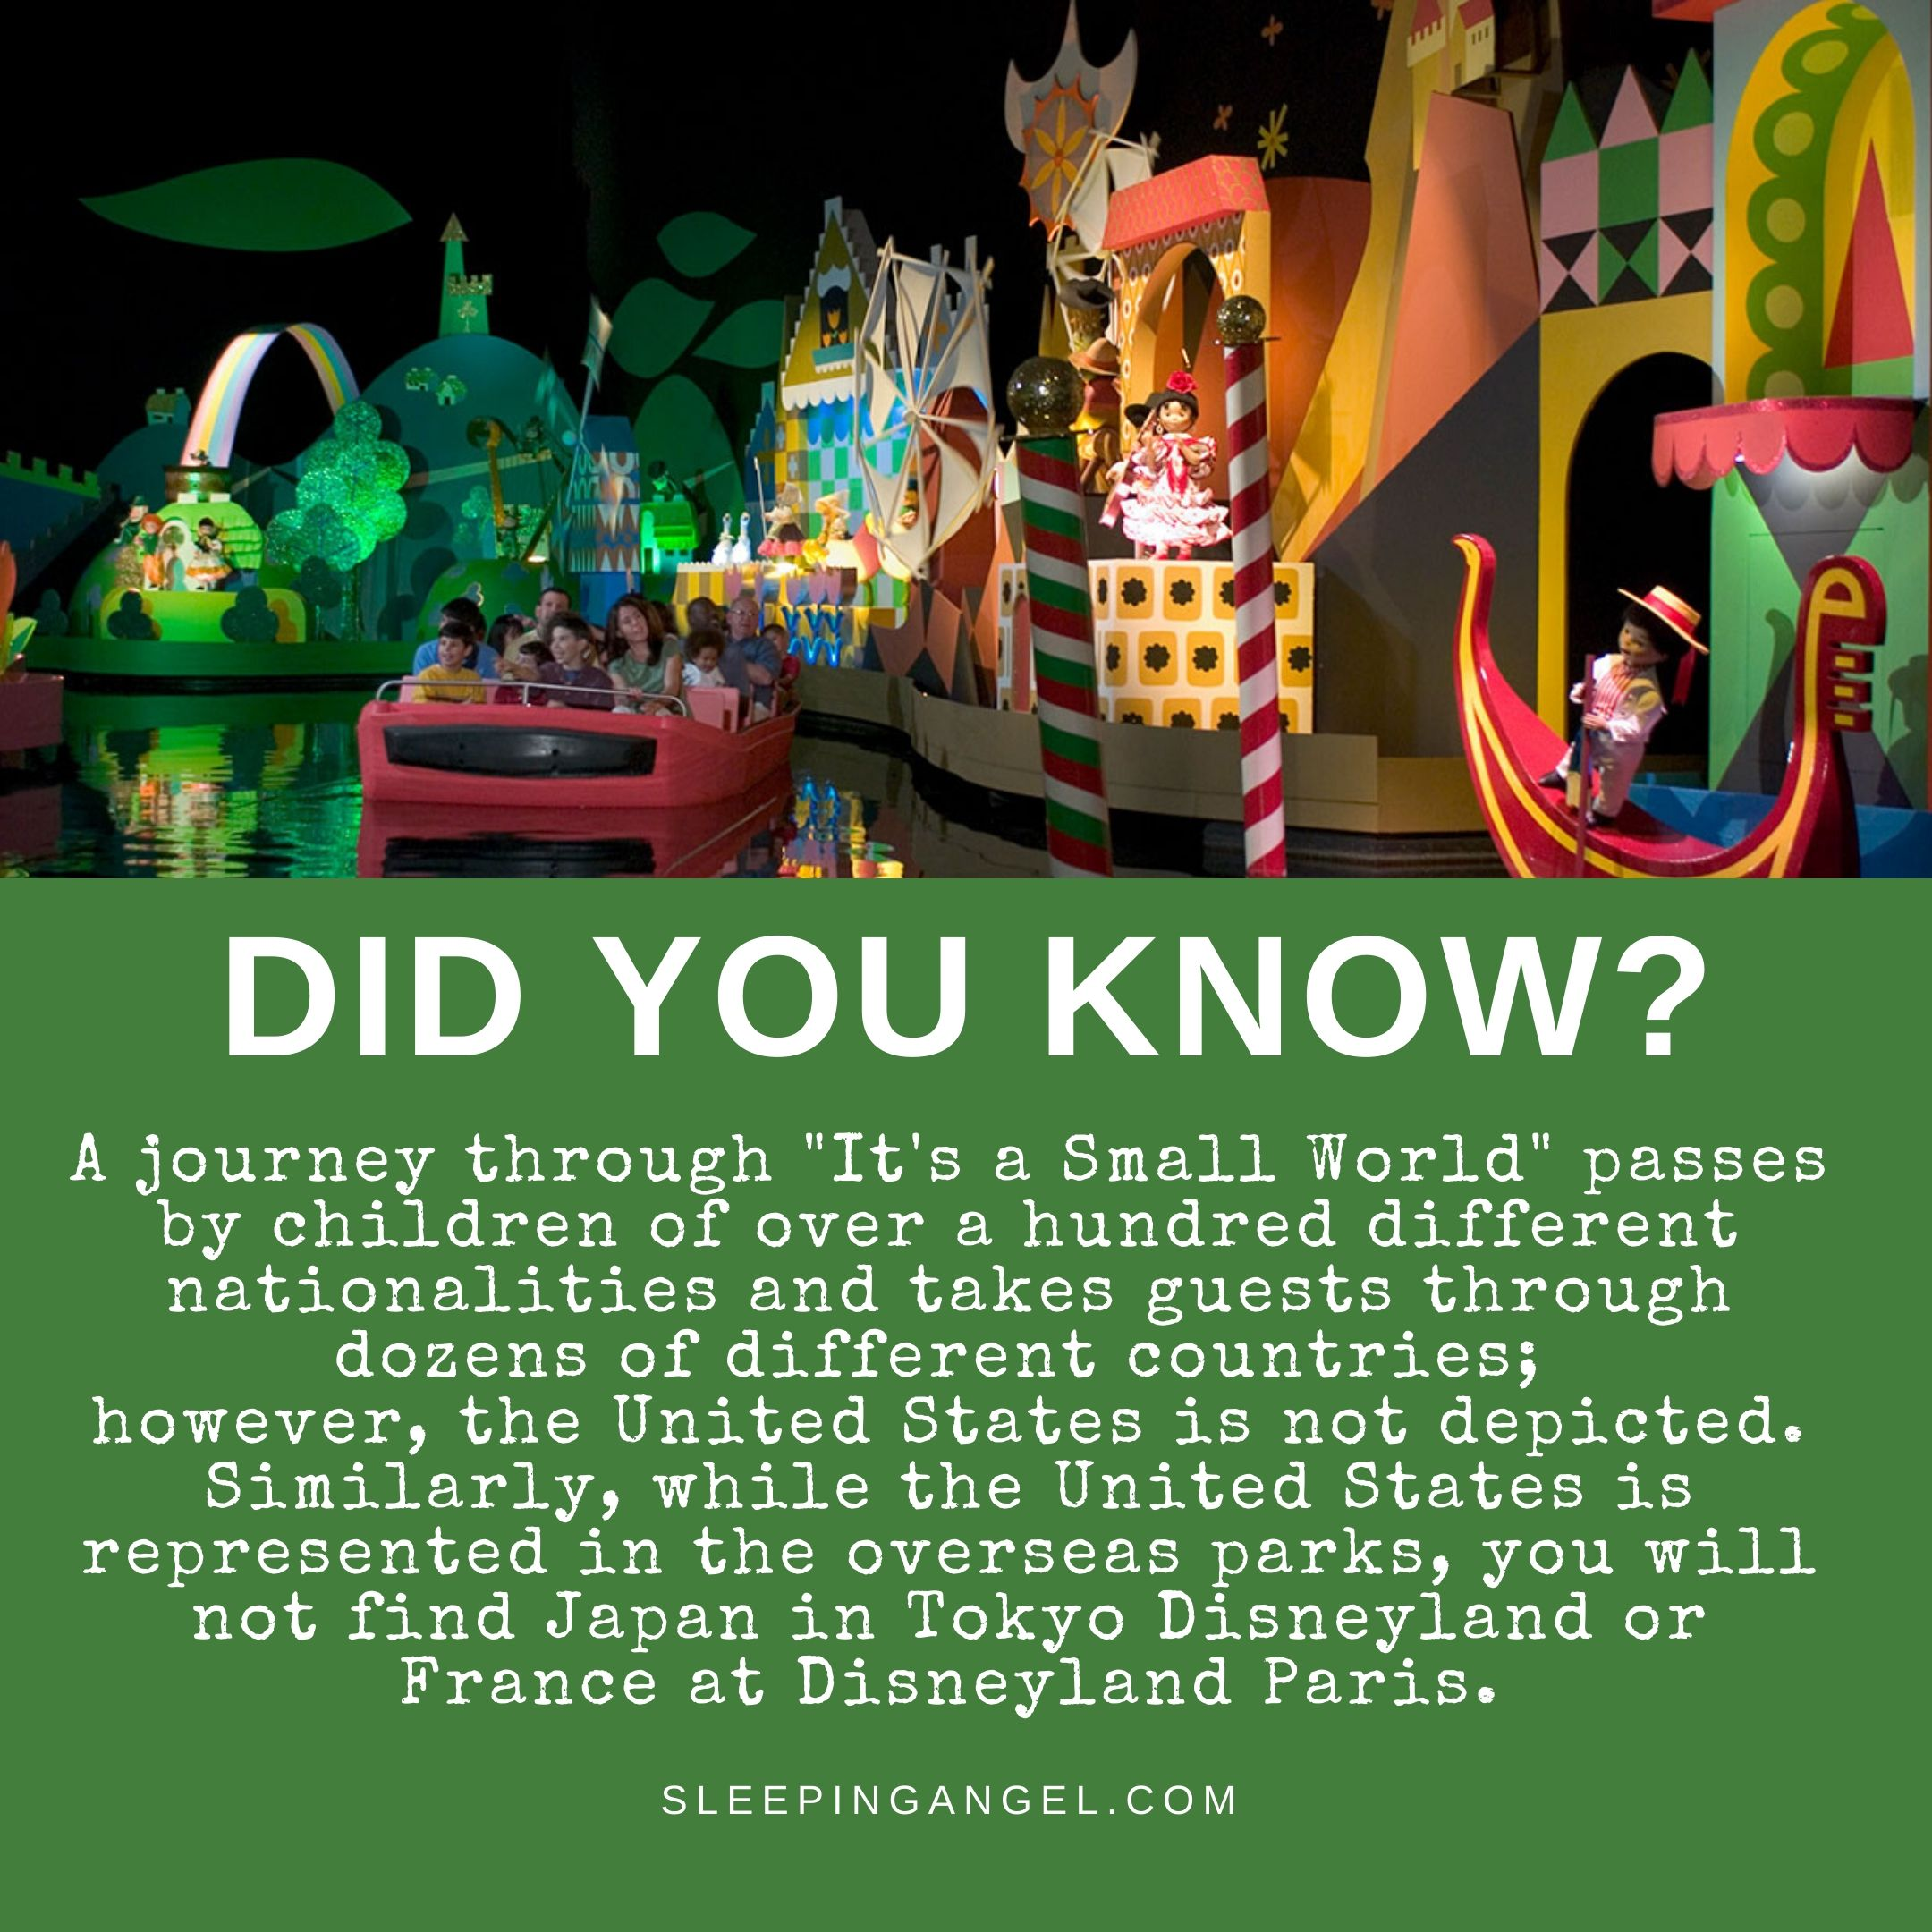 Did You Know? It's a Small World